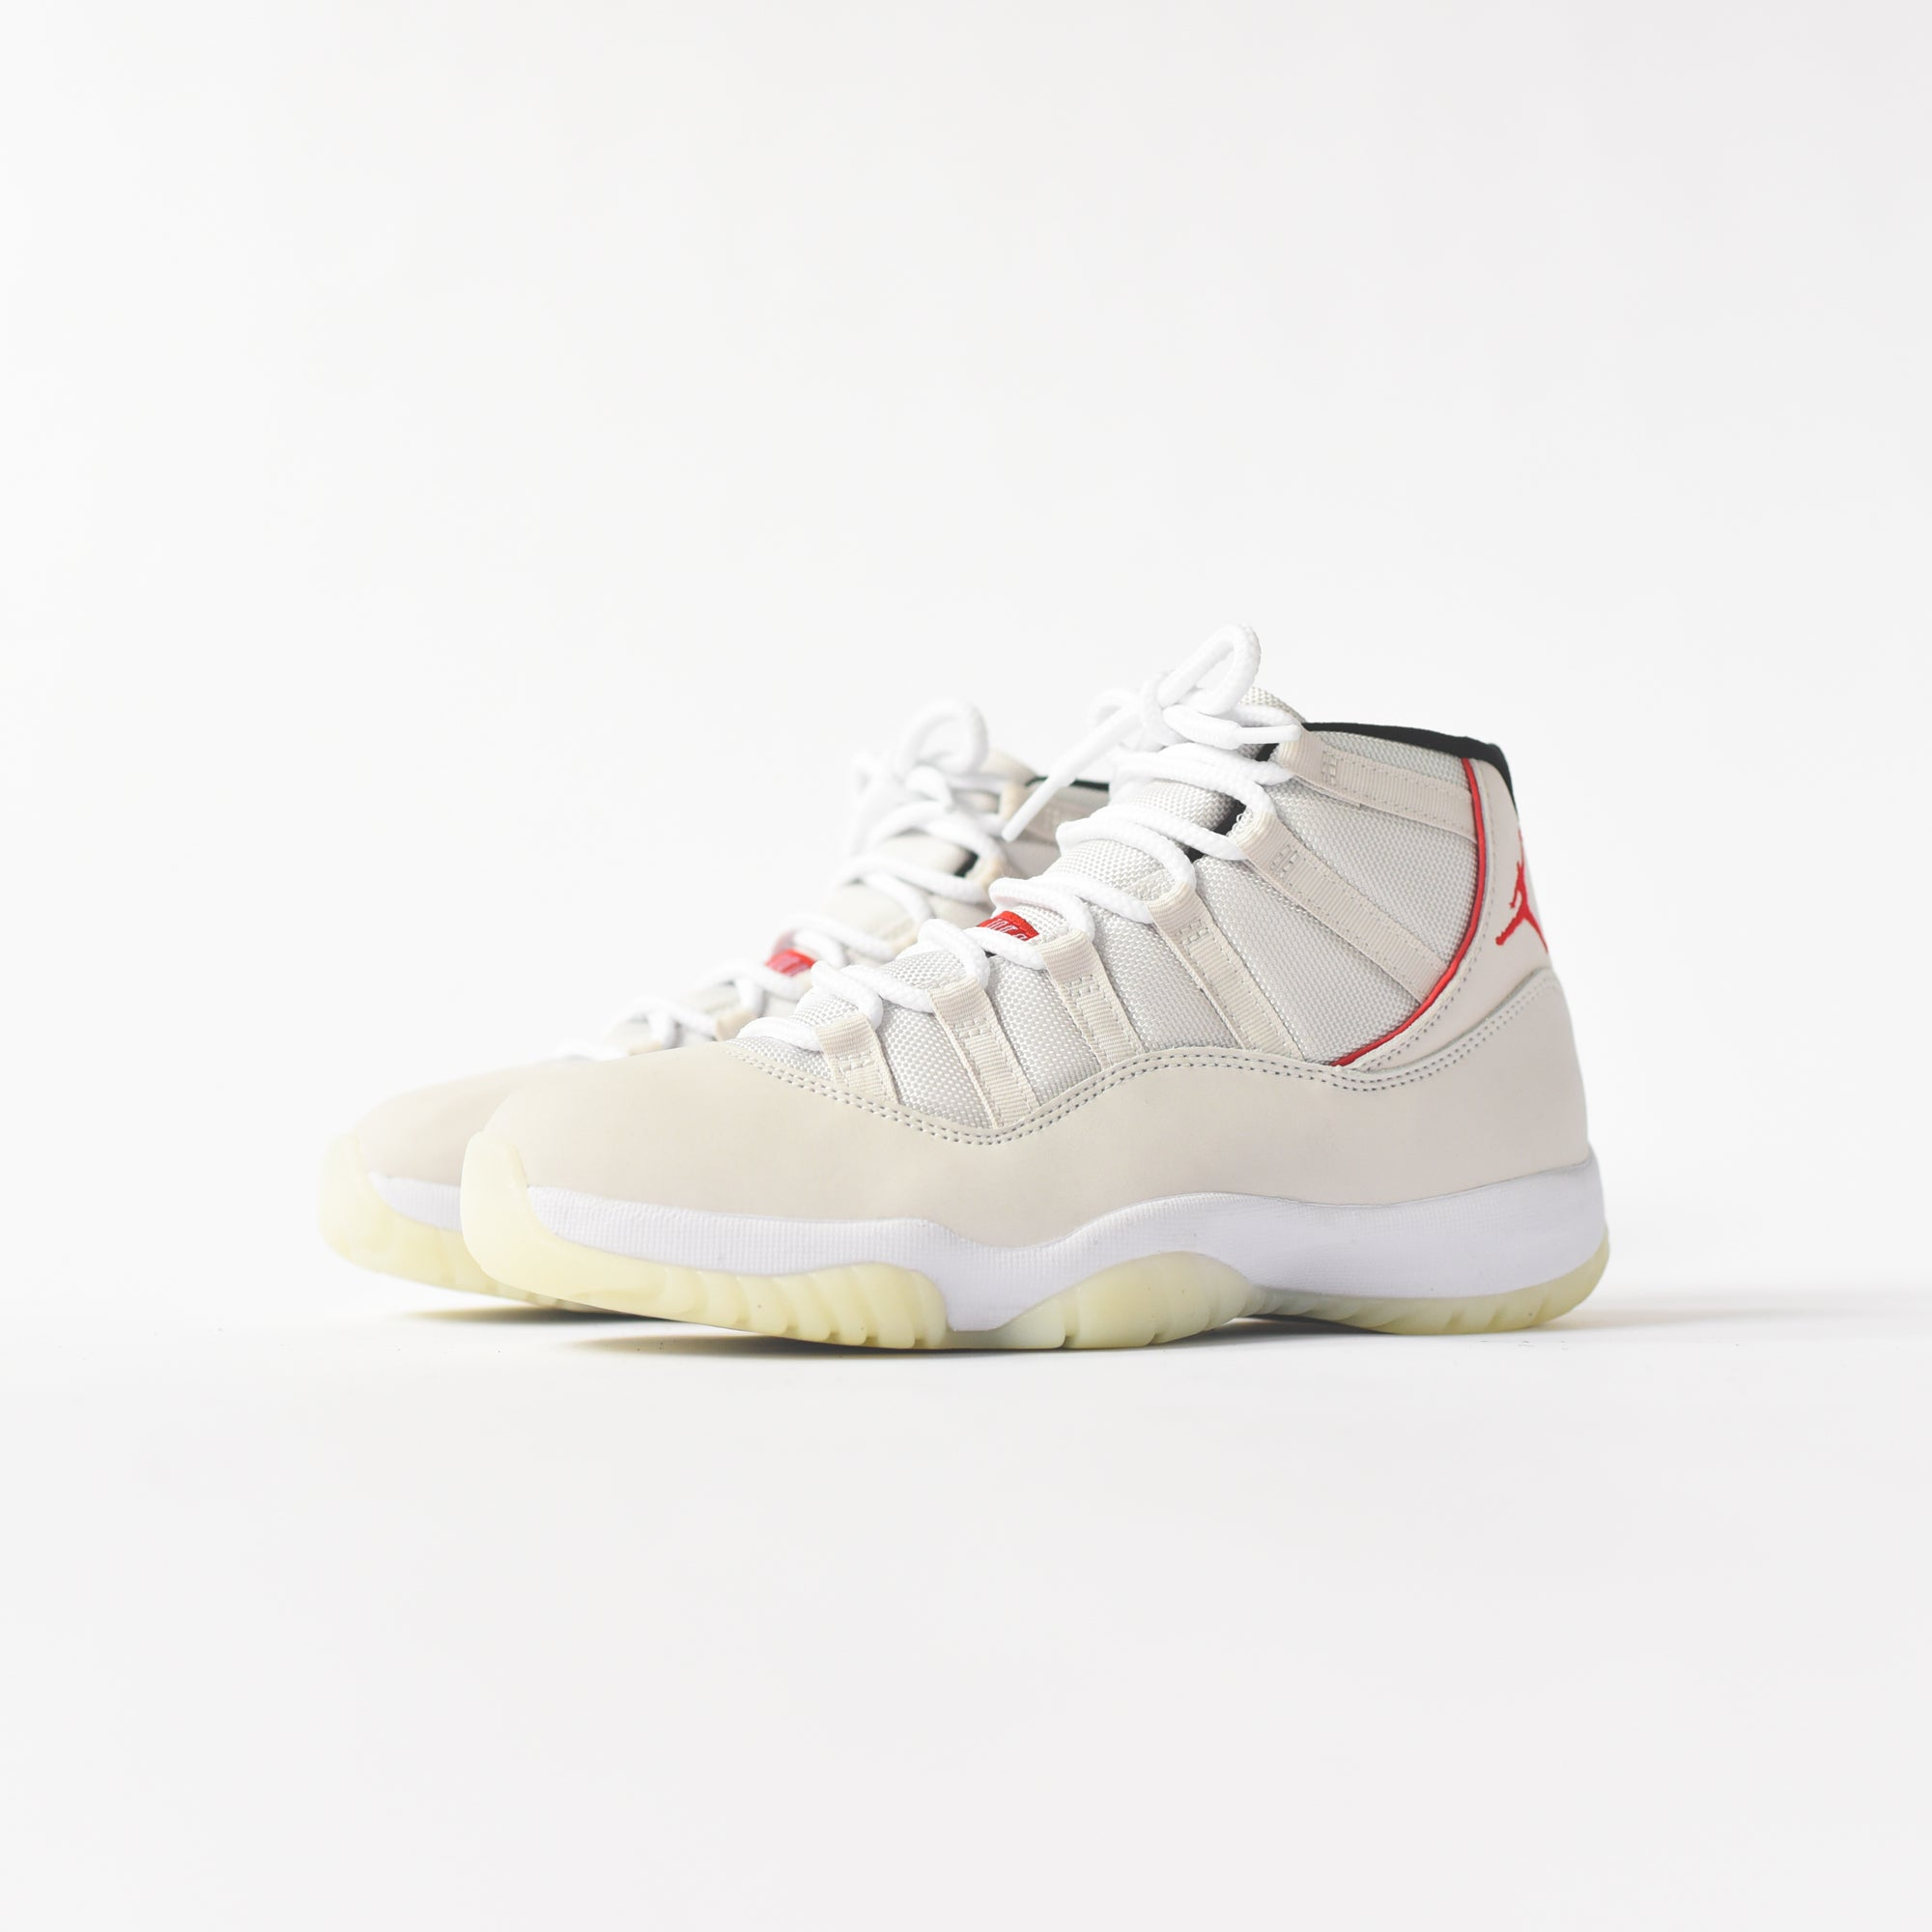 Nike Air Jordan 11 Retro , Platinum Tint / University Red